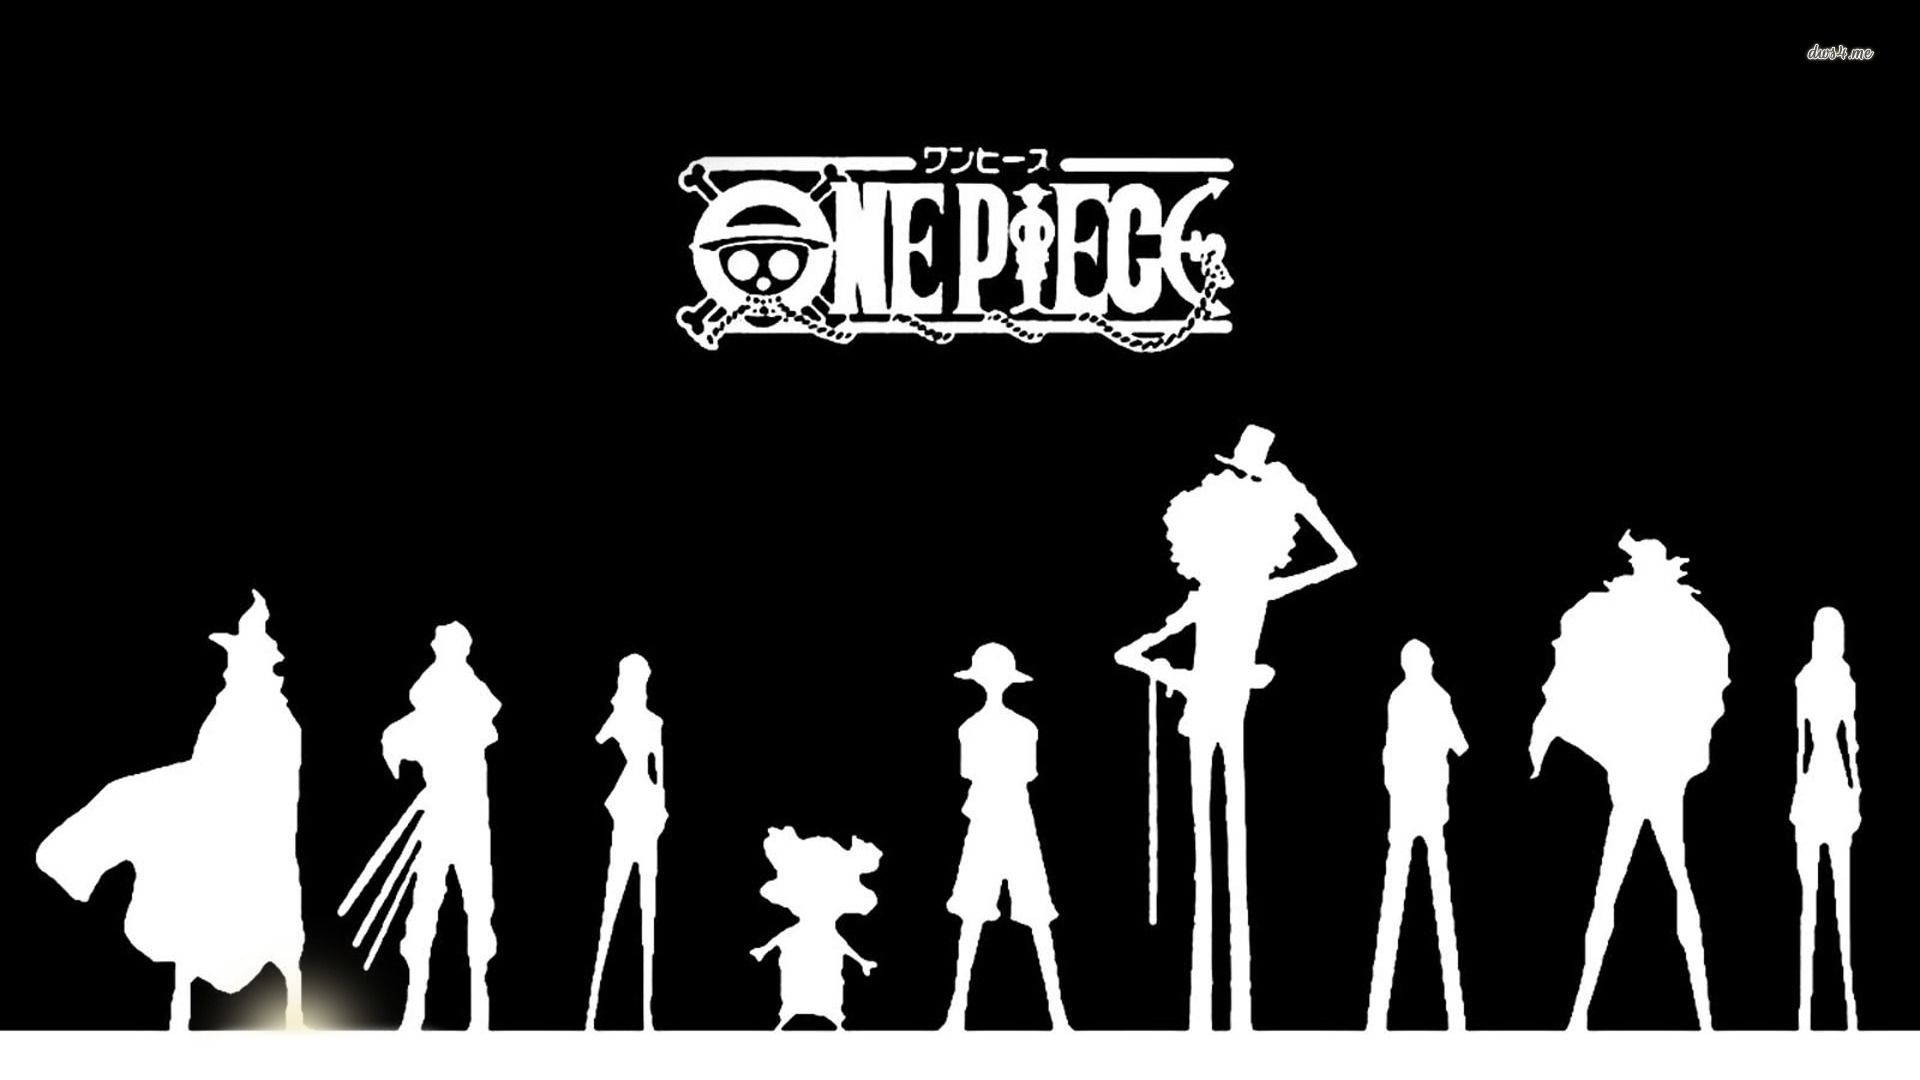 Luffy Black And White Wallpapers Top Free Luffy Black And White Backgrounds Wallpaperaccess